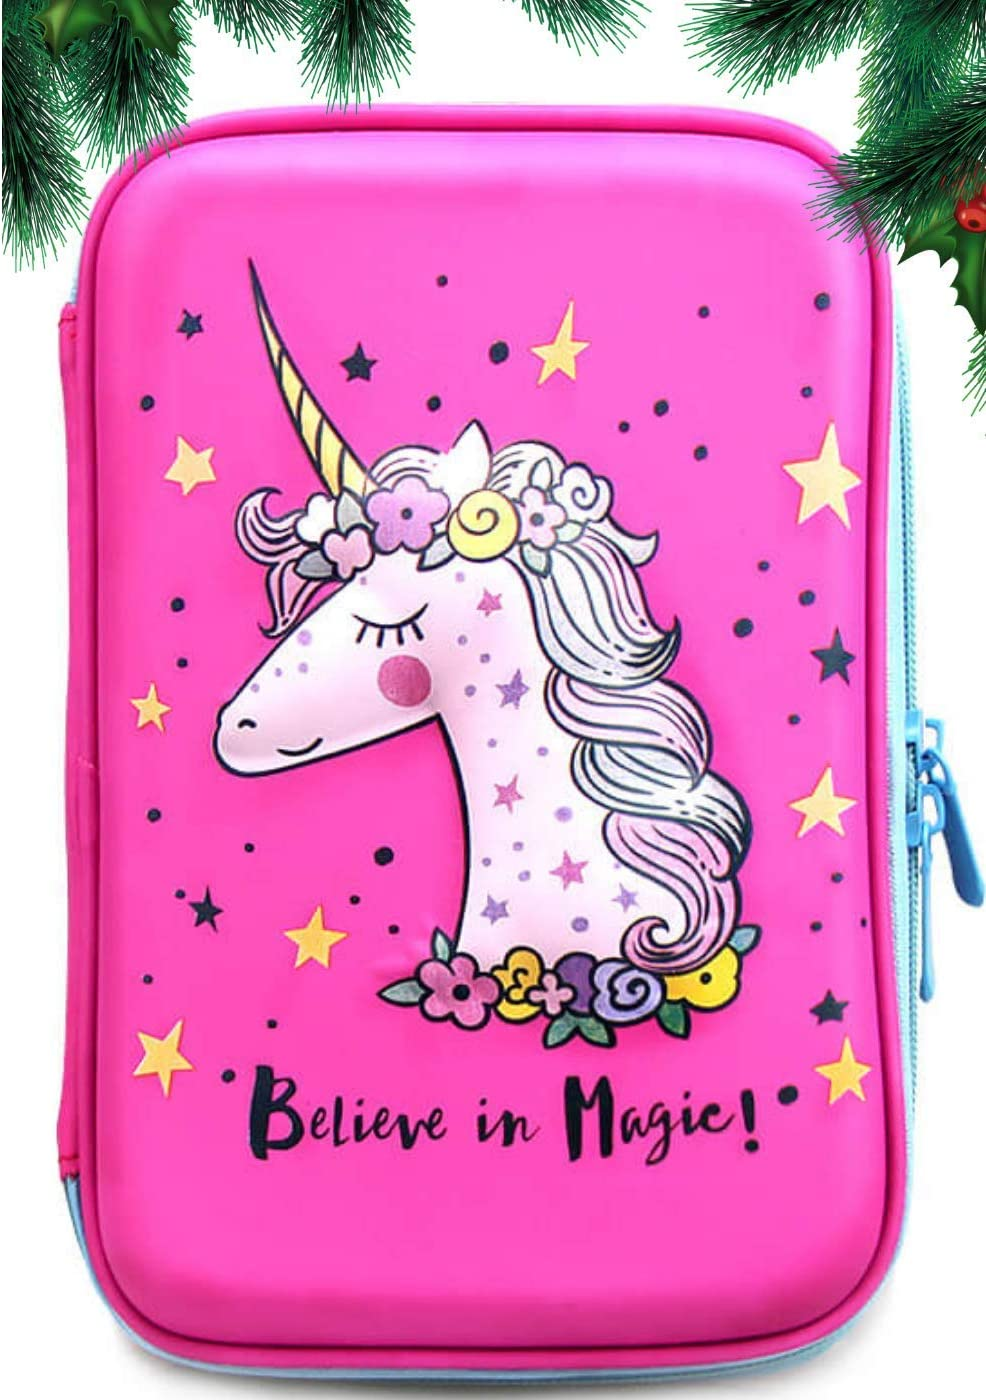 Unicorn Pencil Case | Girls Cute Unique Design Pen Holder Hight Quality | Stationary Organizer with Compartments (Hardtop) | Large Capacity Pink School Zipper Pouch